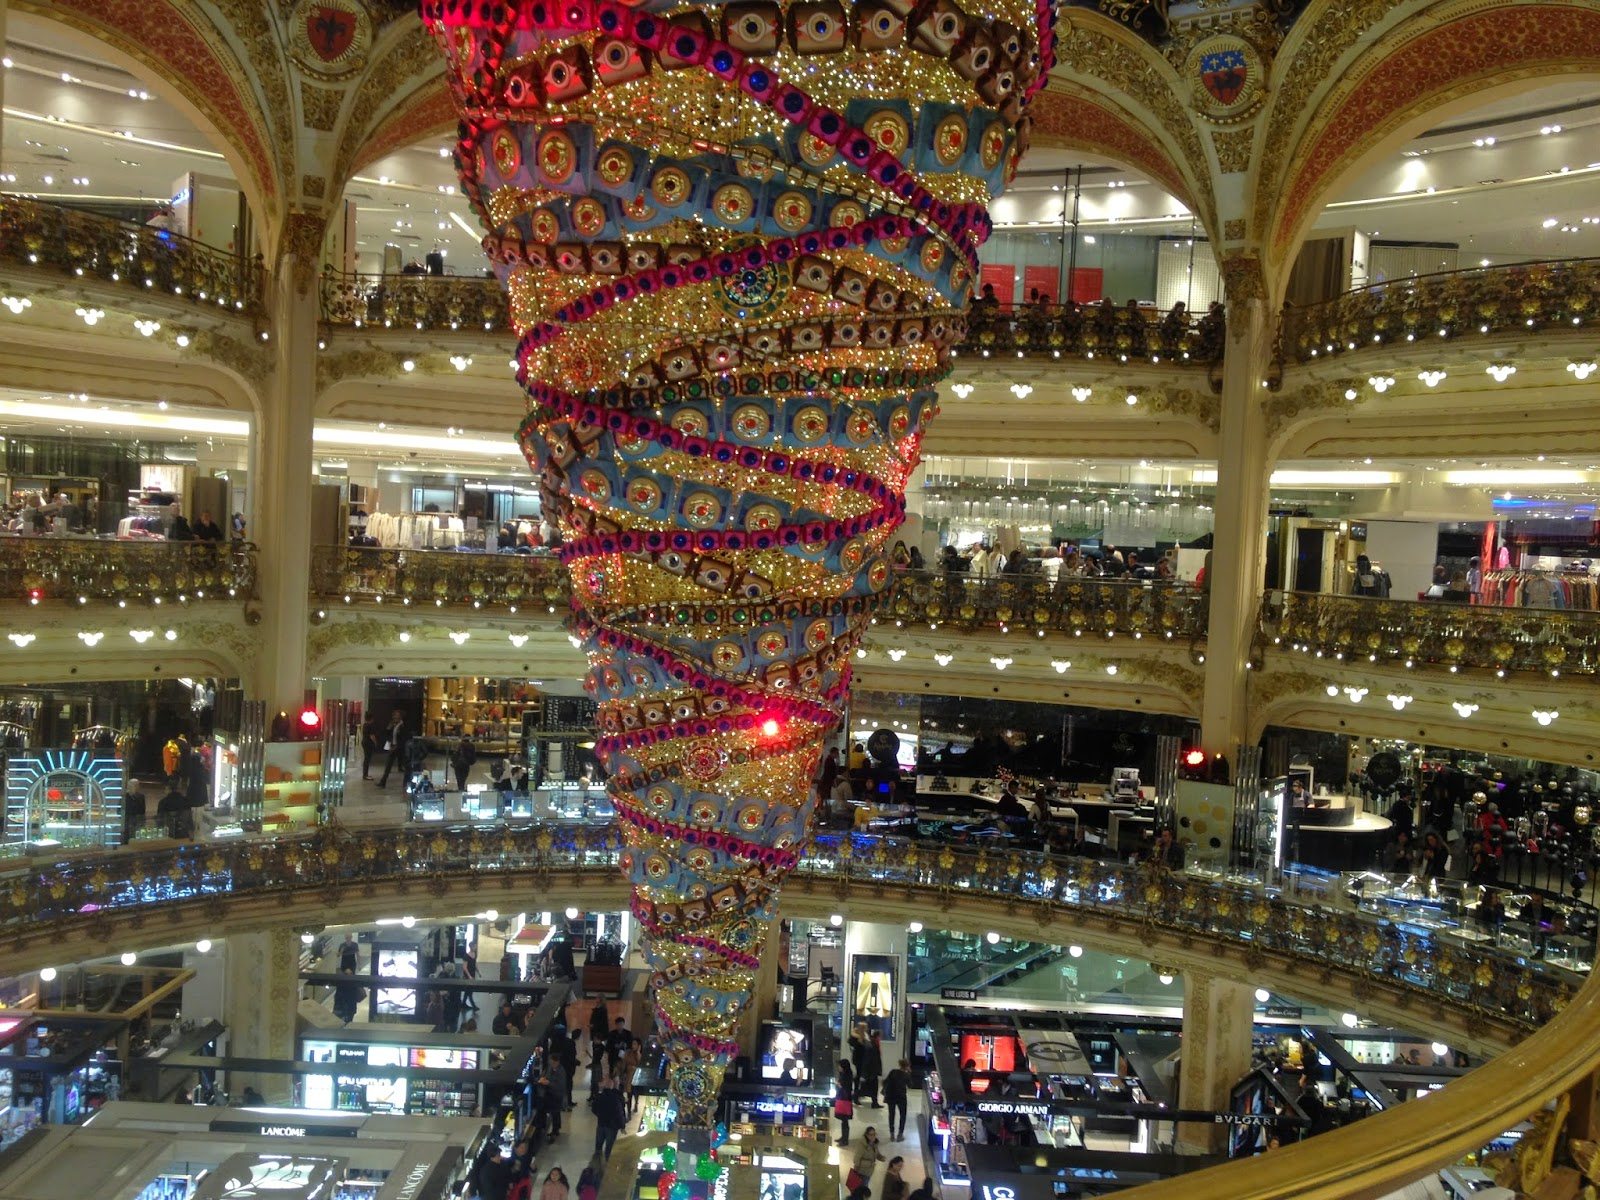 2014 Christmas tree at Galeries Lafayette, Paris